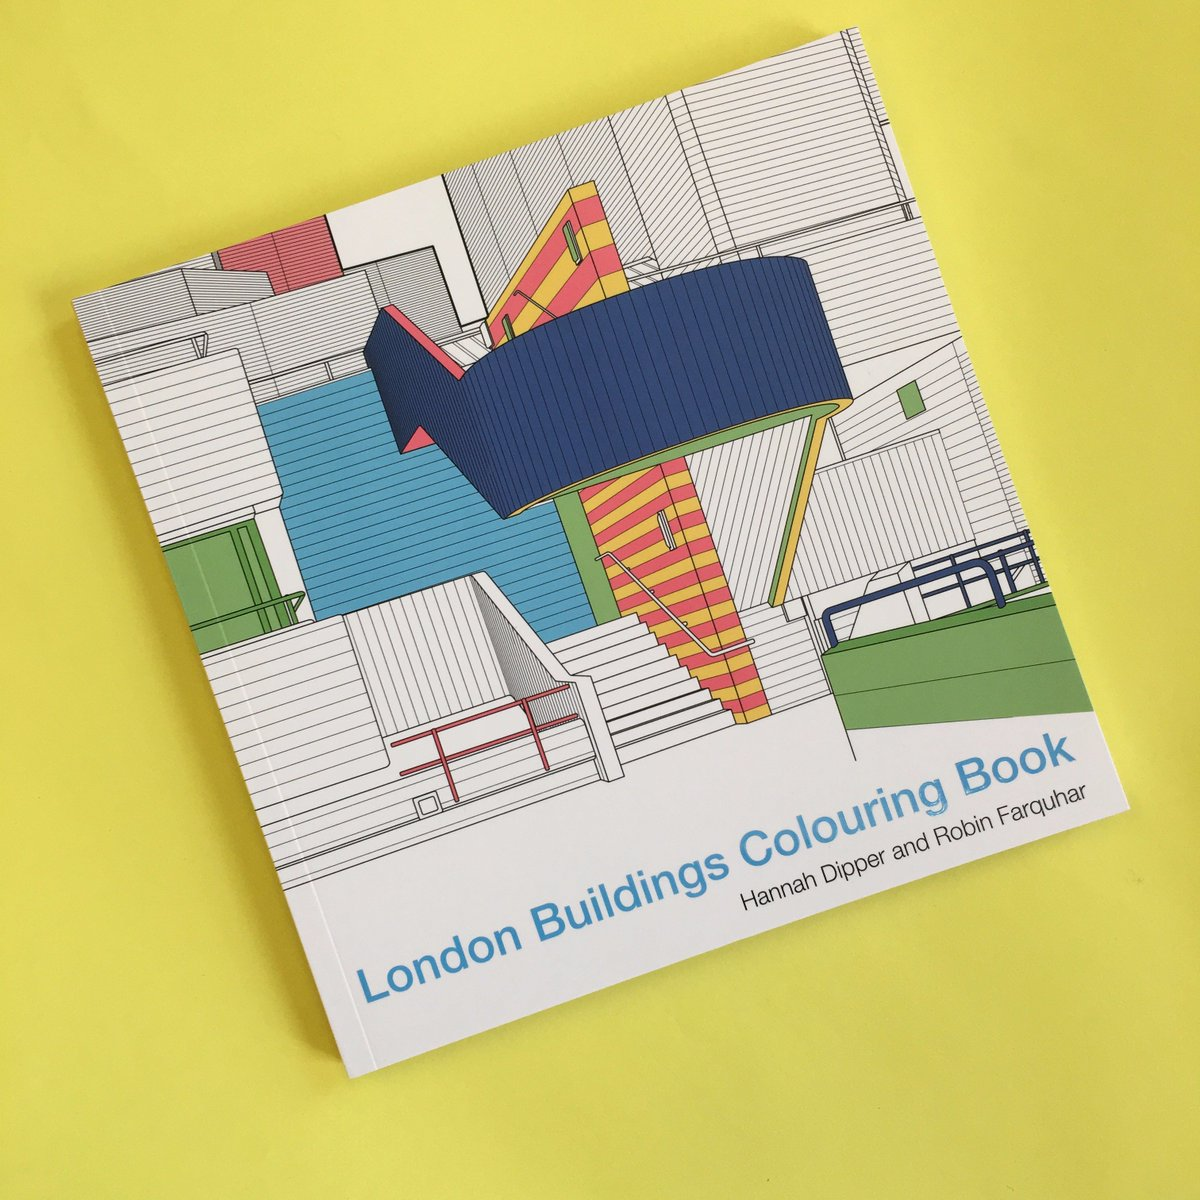 Batsford Books On Twitter Out Now London Buildings Colouring Book By PWANP Architecture Colouringbook Tco K284FIkjYp